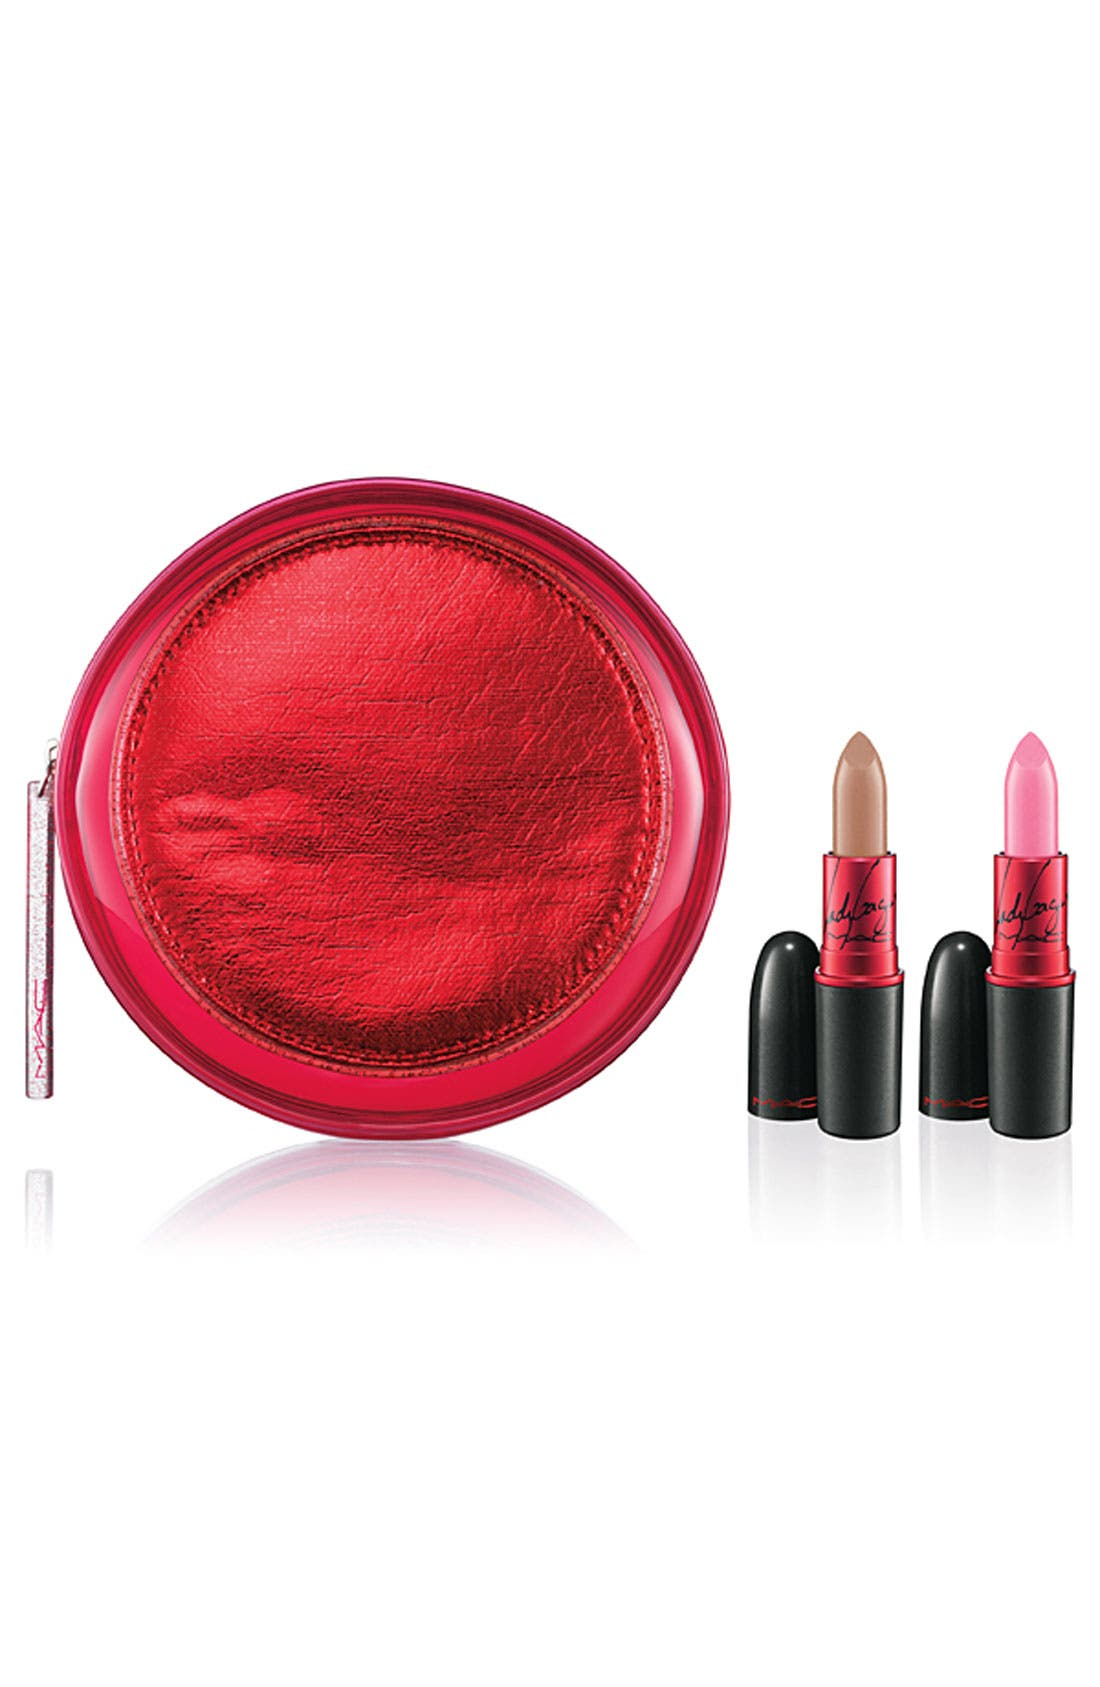 Main Image - M·A·C 'Viva Glam - Melt Your Heart' Set